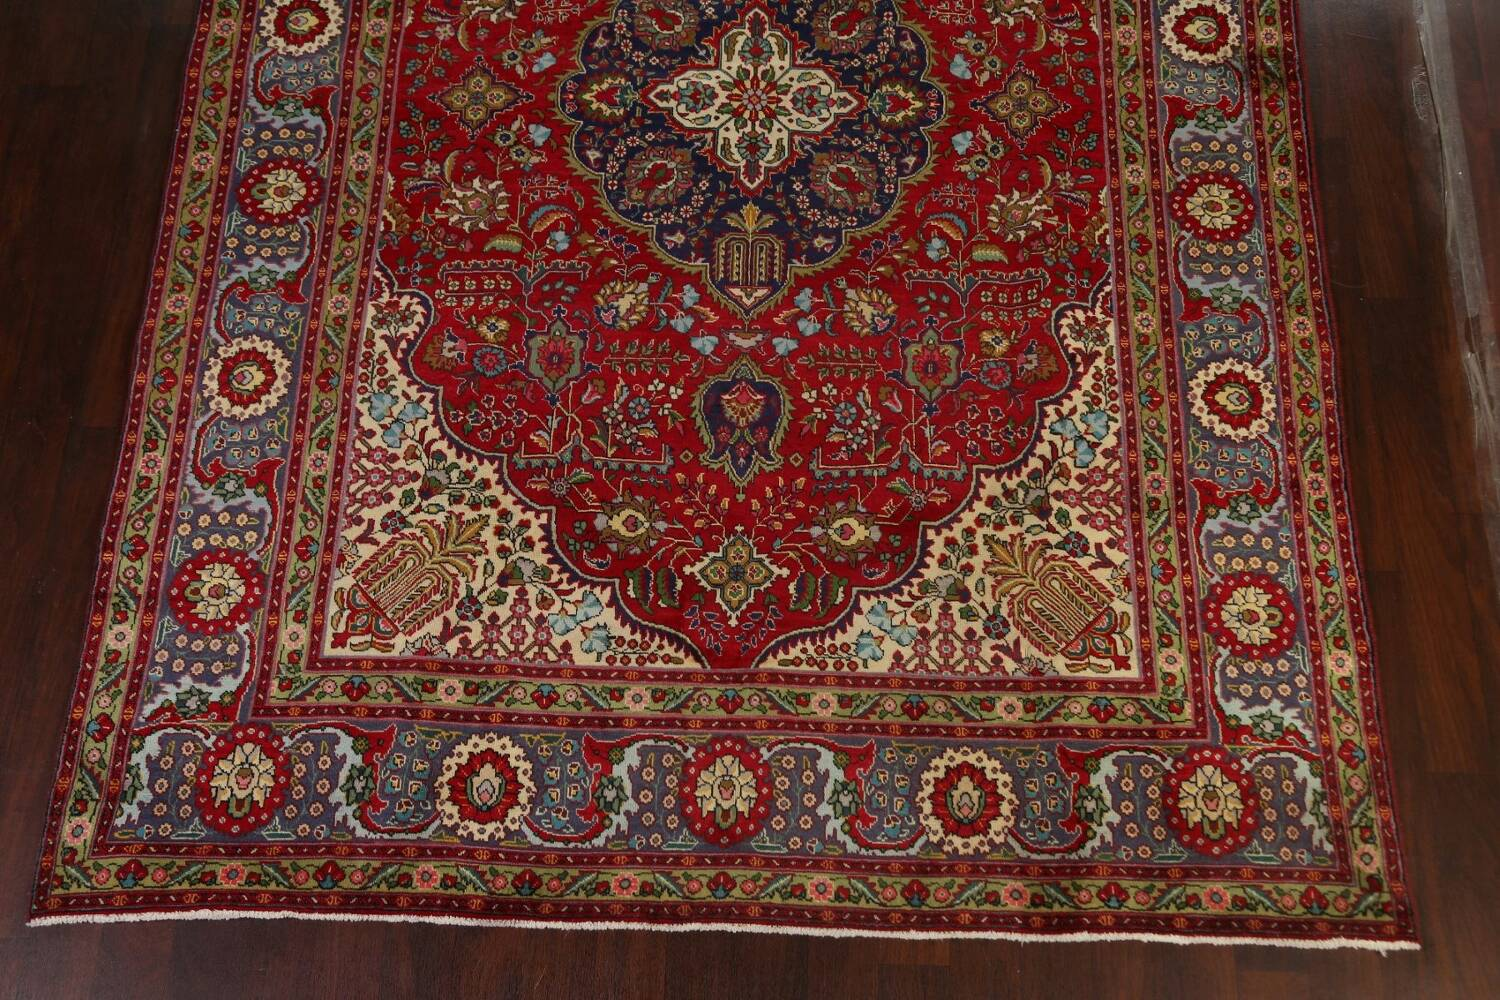 Floral Red Tabriz Persian Area Rug 8x12 image 8